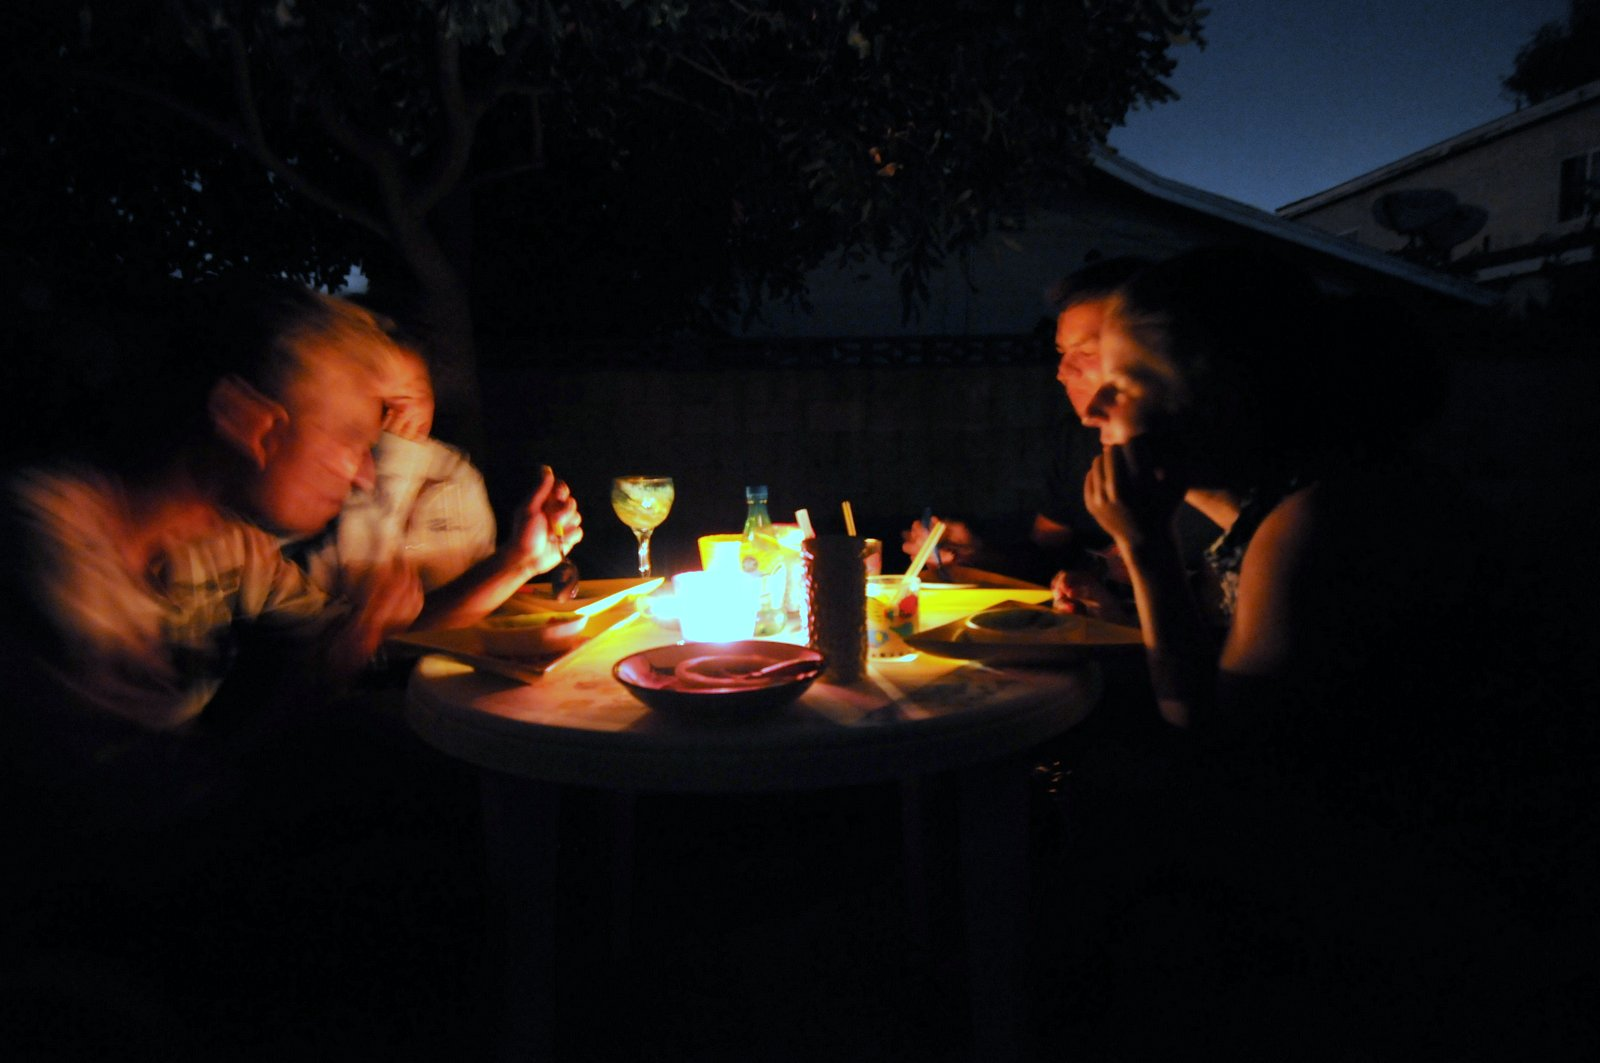 Denes, Csenge, Akos & Eszter around the backyard table